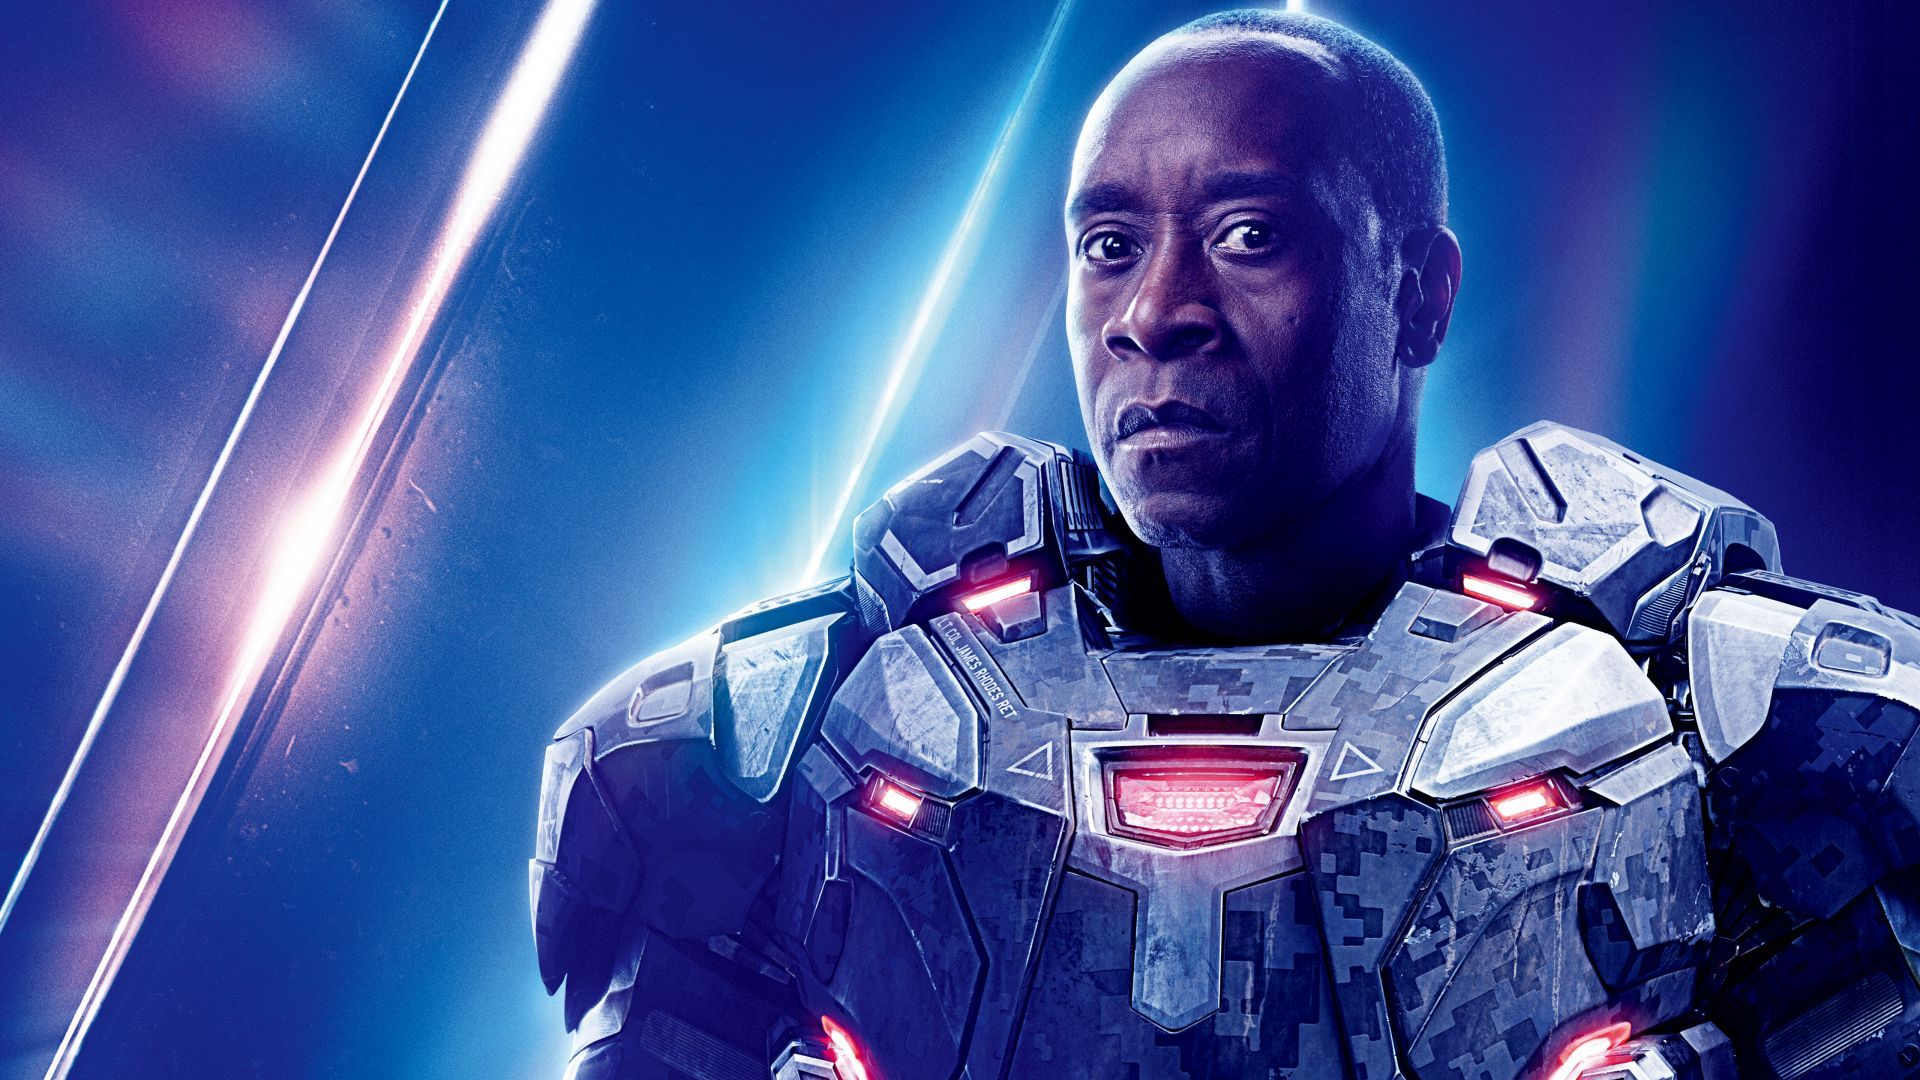 Download Wallpapers Of Avengers Infinity War Don Cheadle James